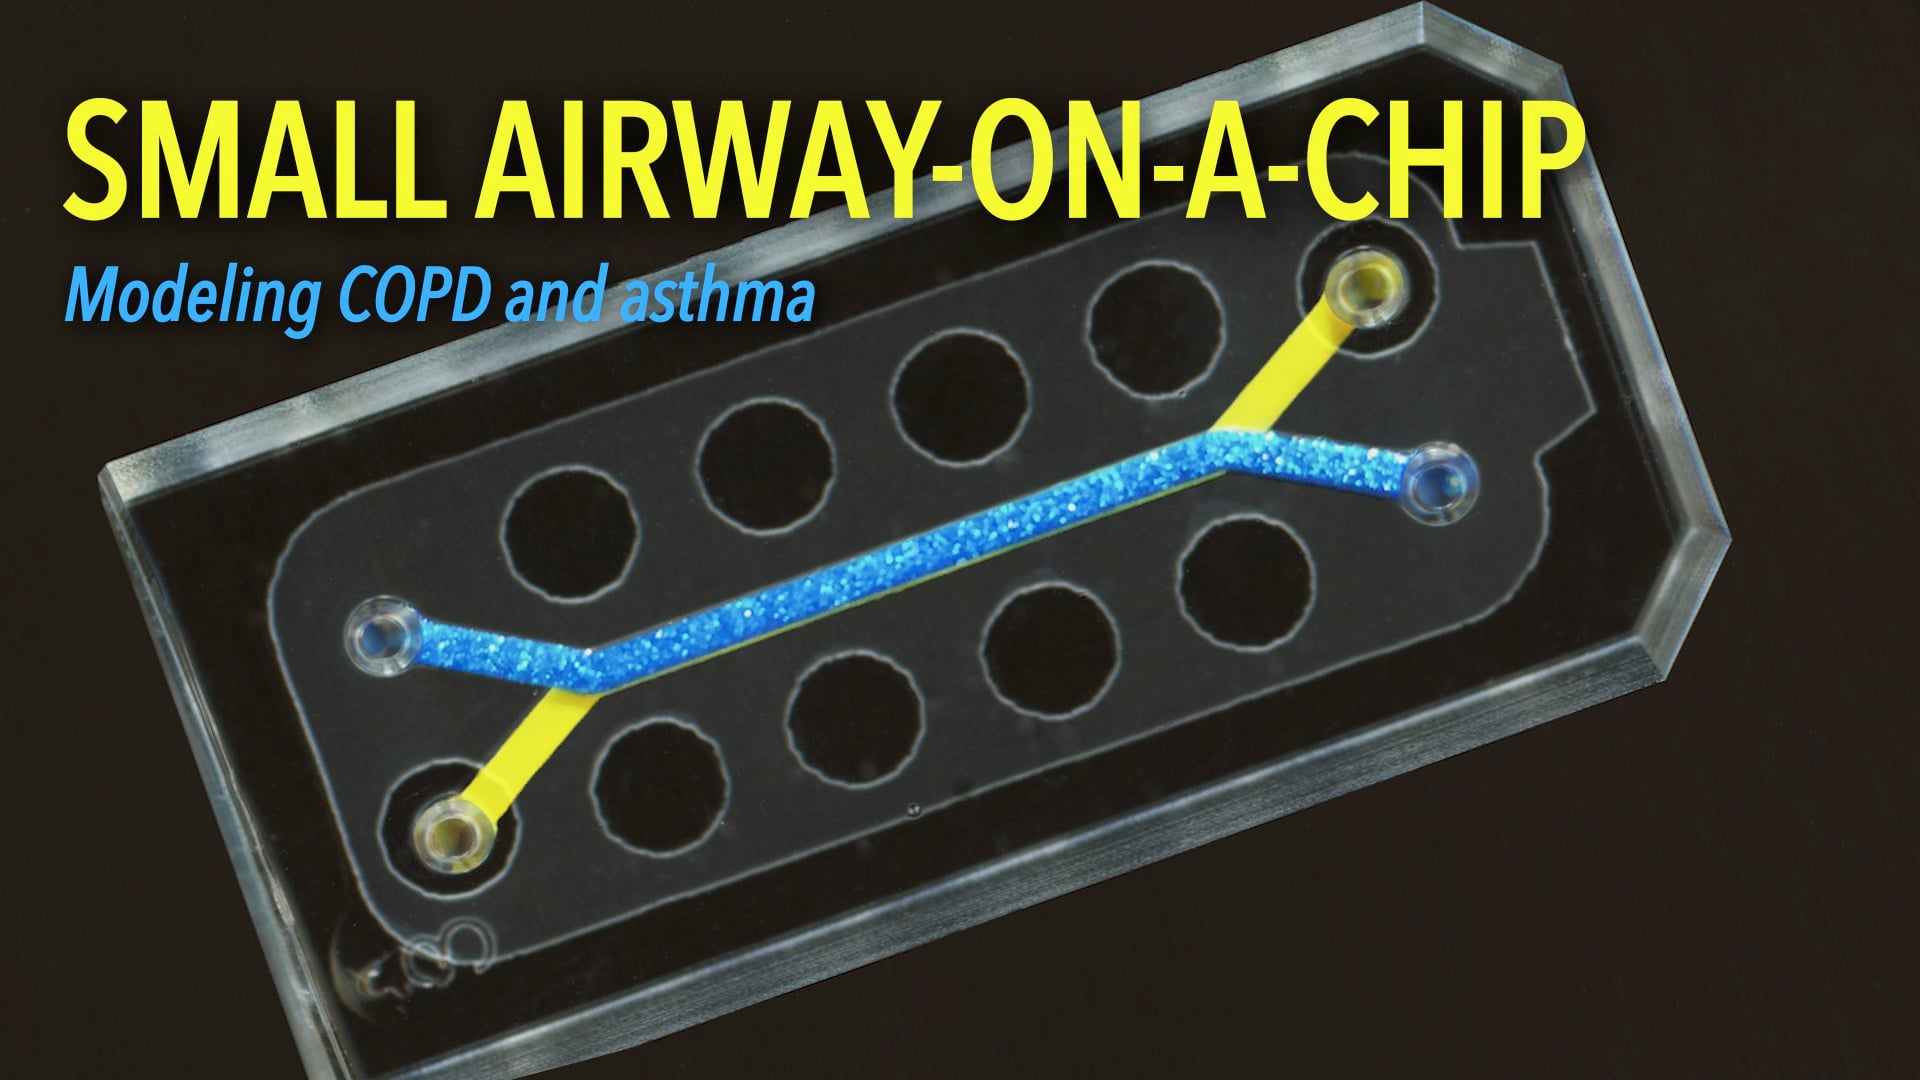 Small Airway-on-a-Chip: Modeling COPD and Asthma